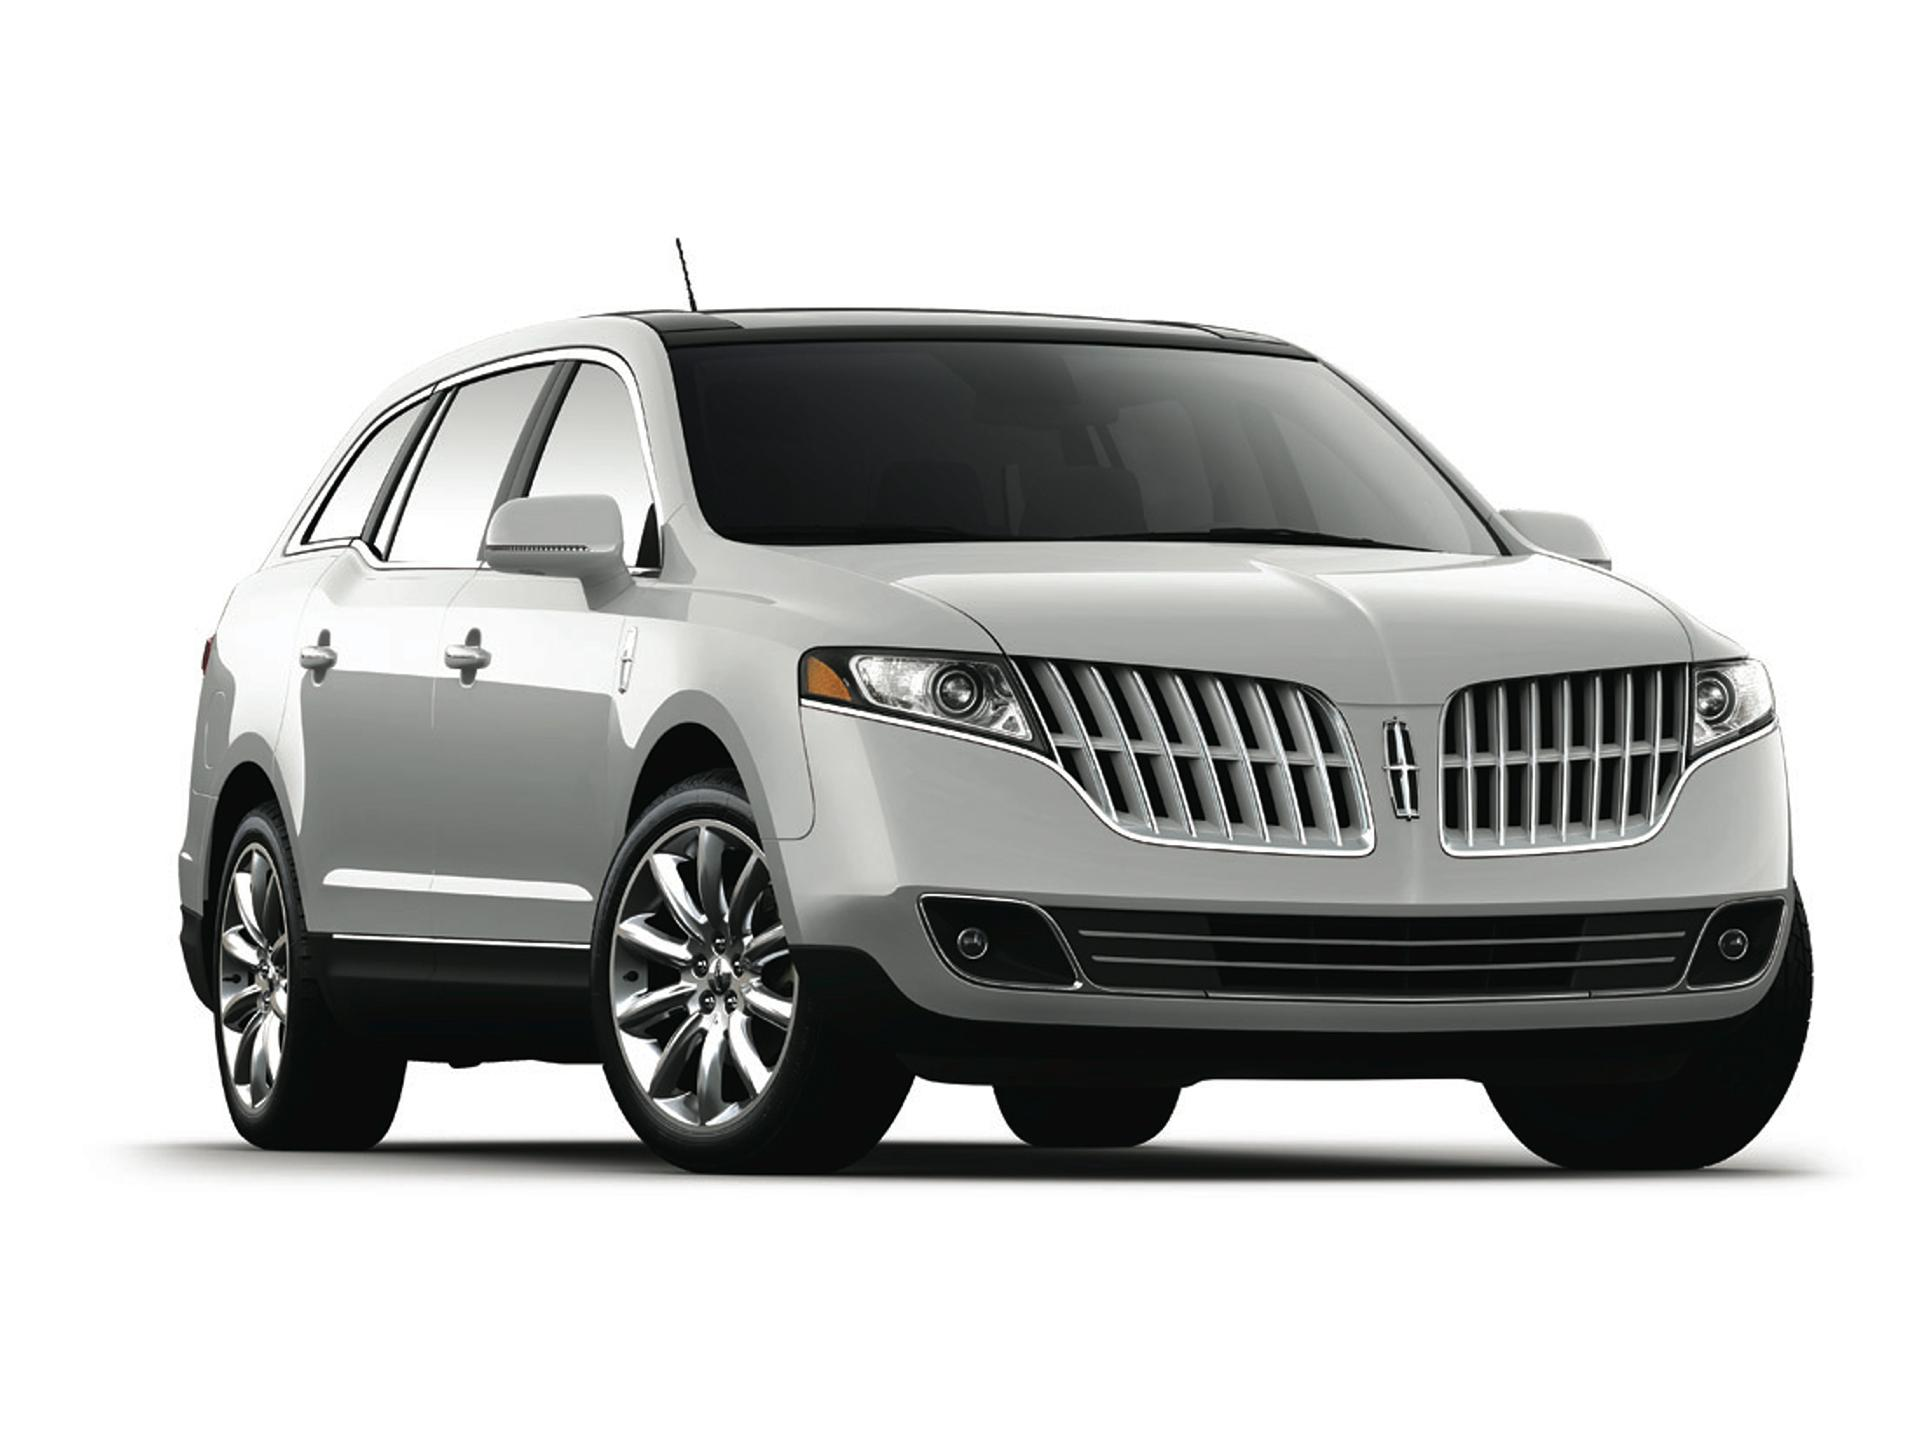 2012 lincoln mkt technical specifications and data engine dimensions and mechanical details. Black Bedroom Furniture Sets. Home Design Ideas